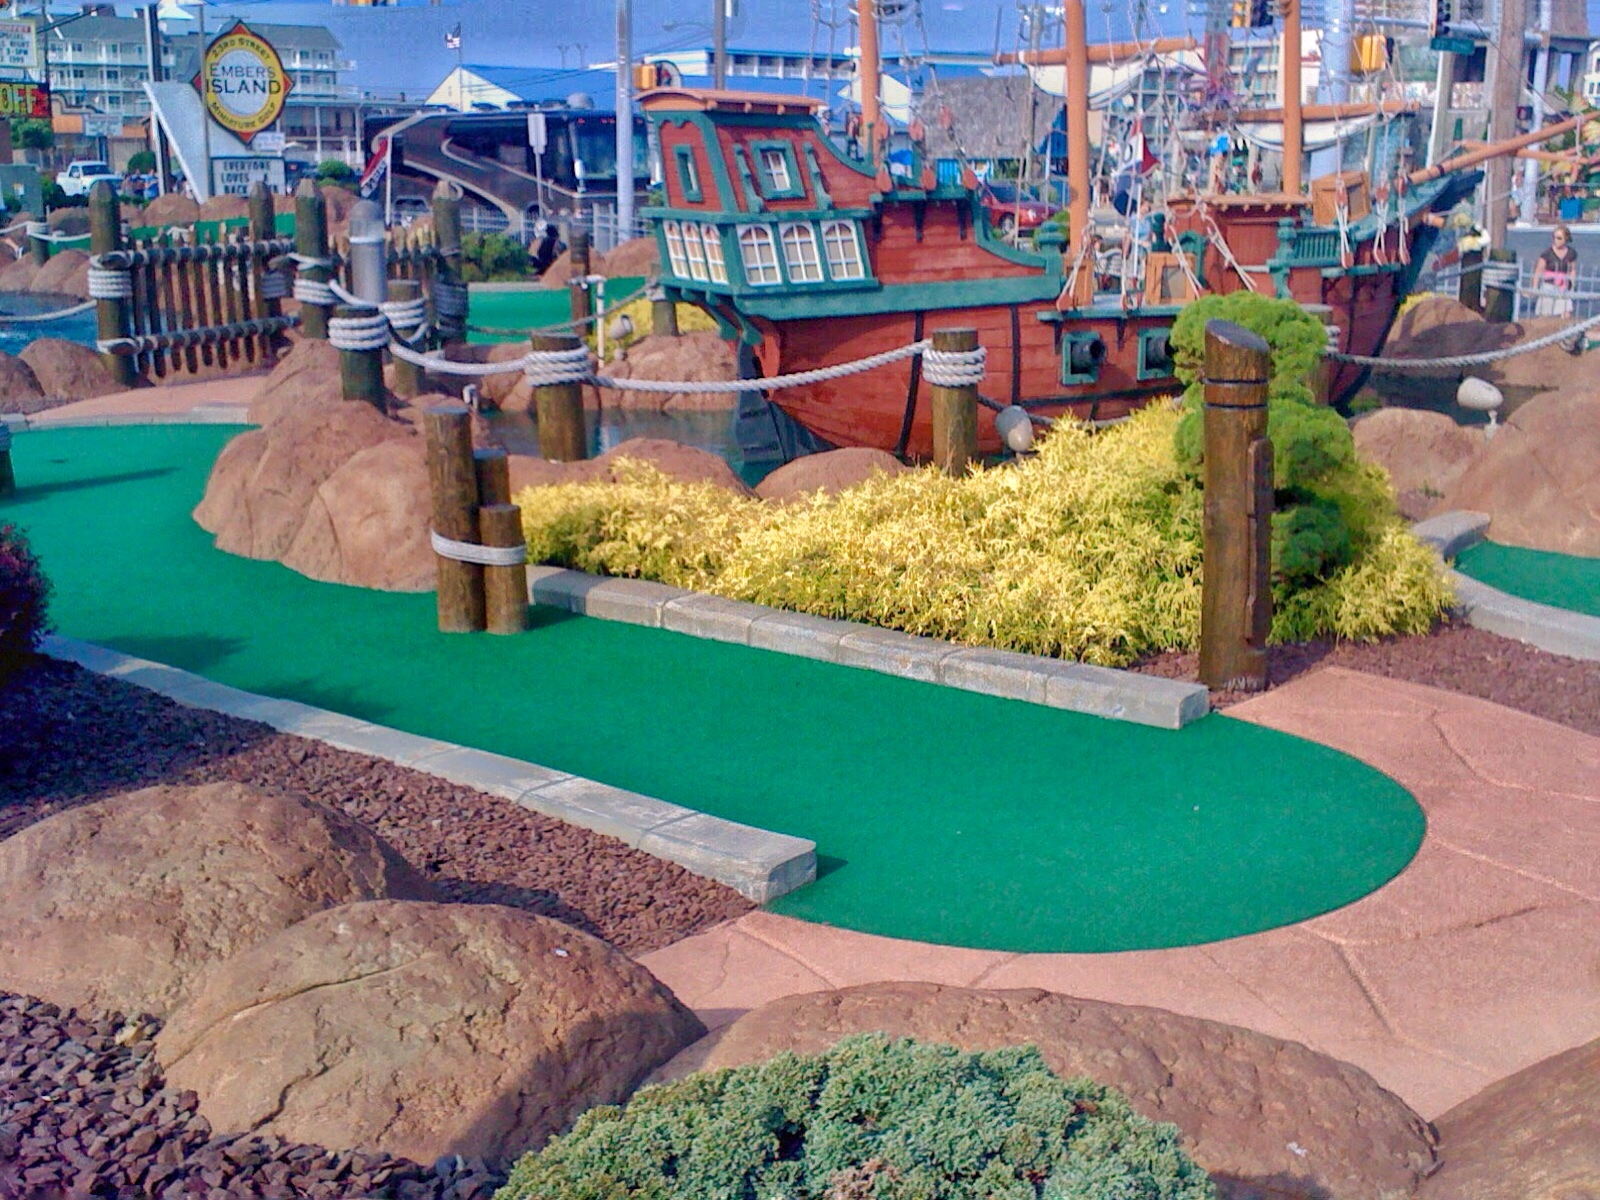 Quick Guide to Ocean City: Mini-Golf is a must!